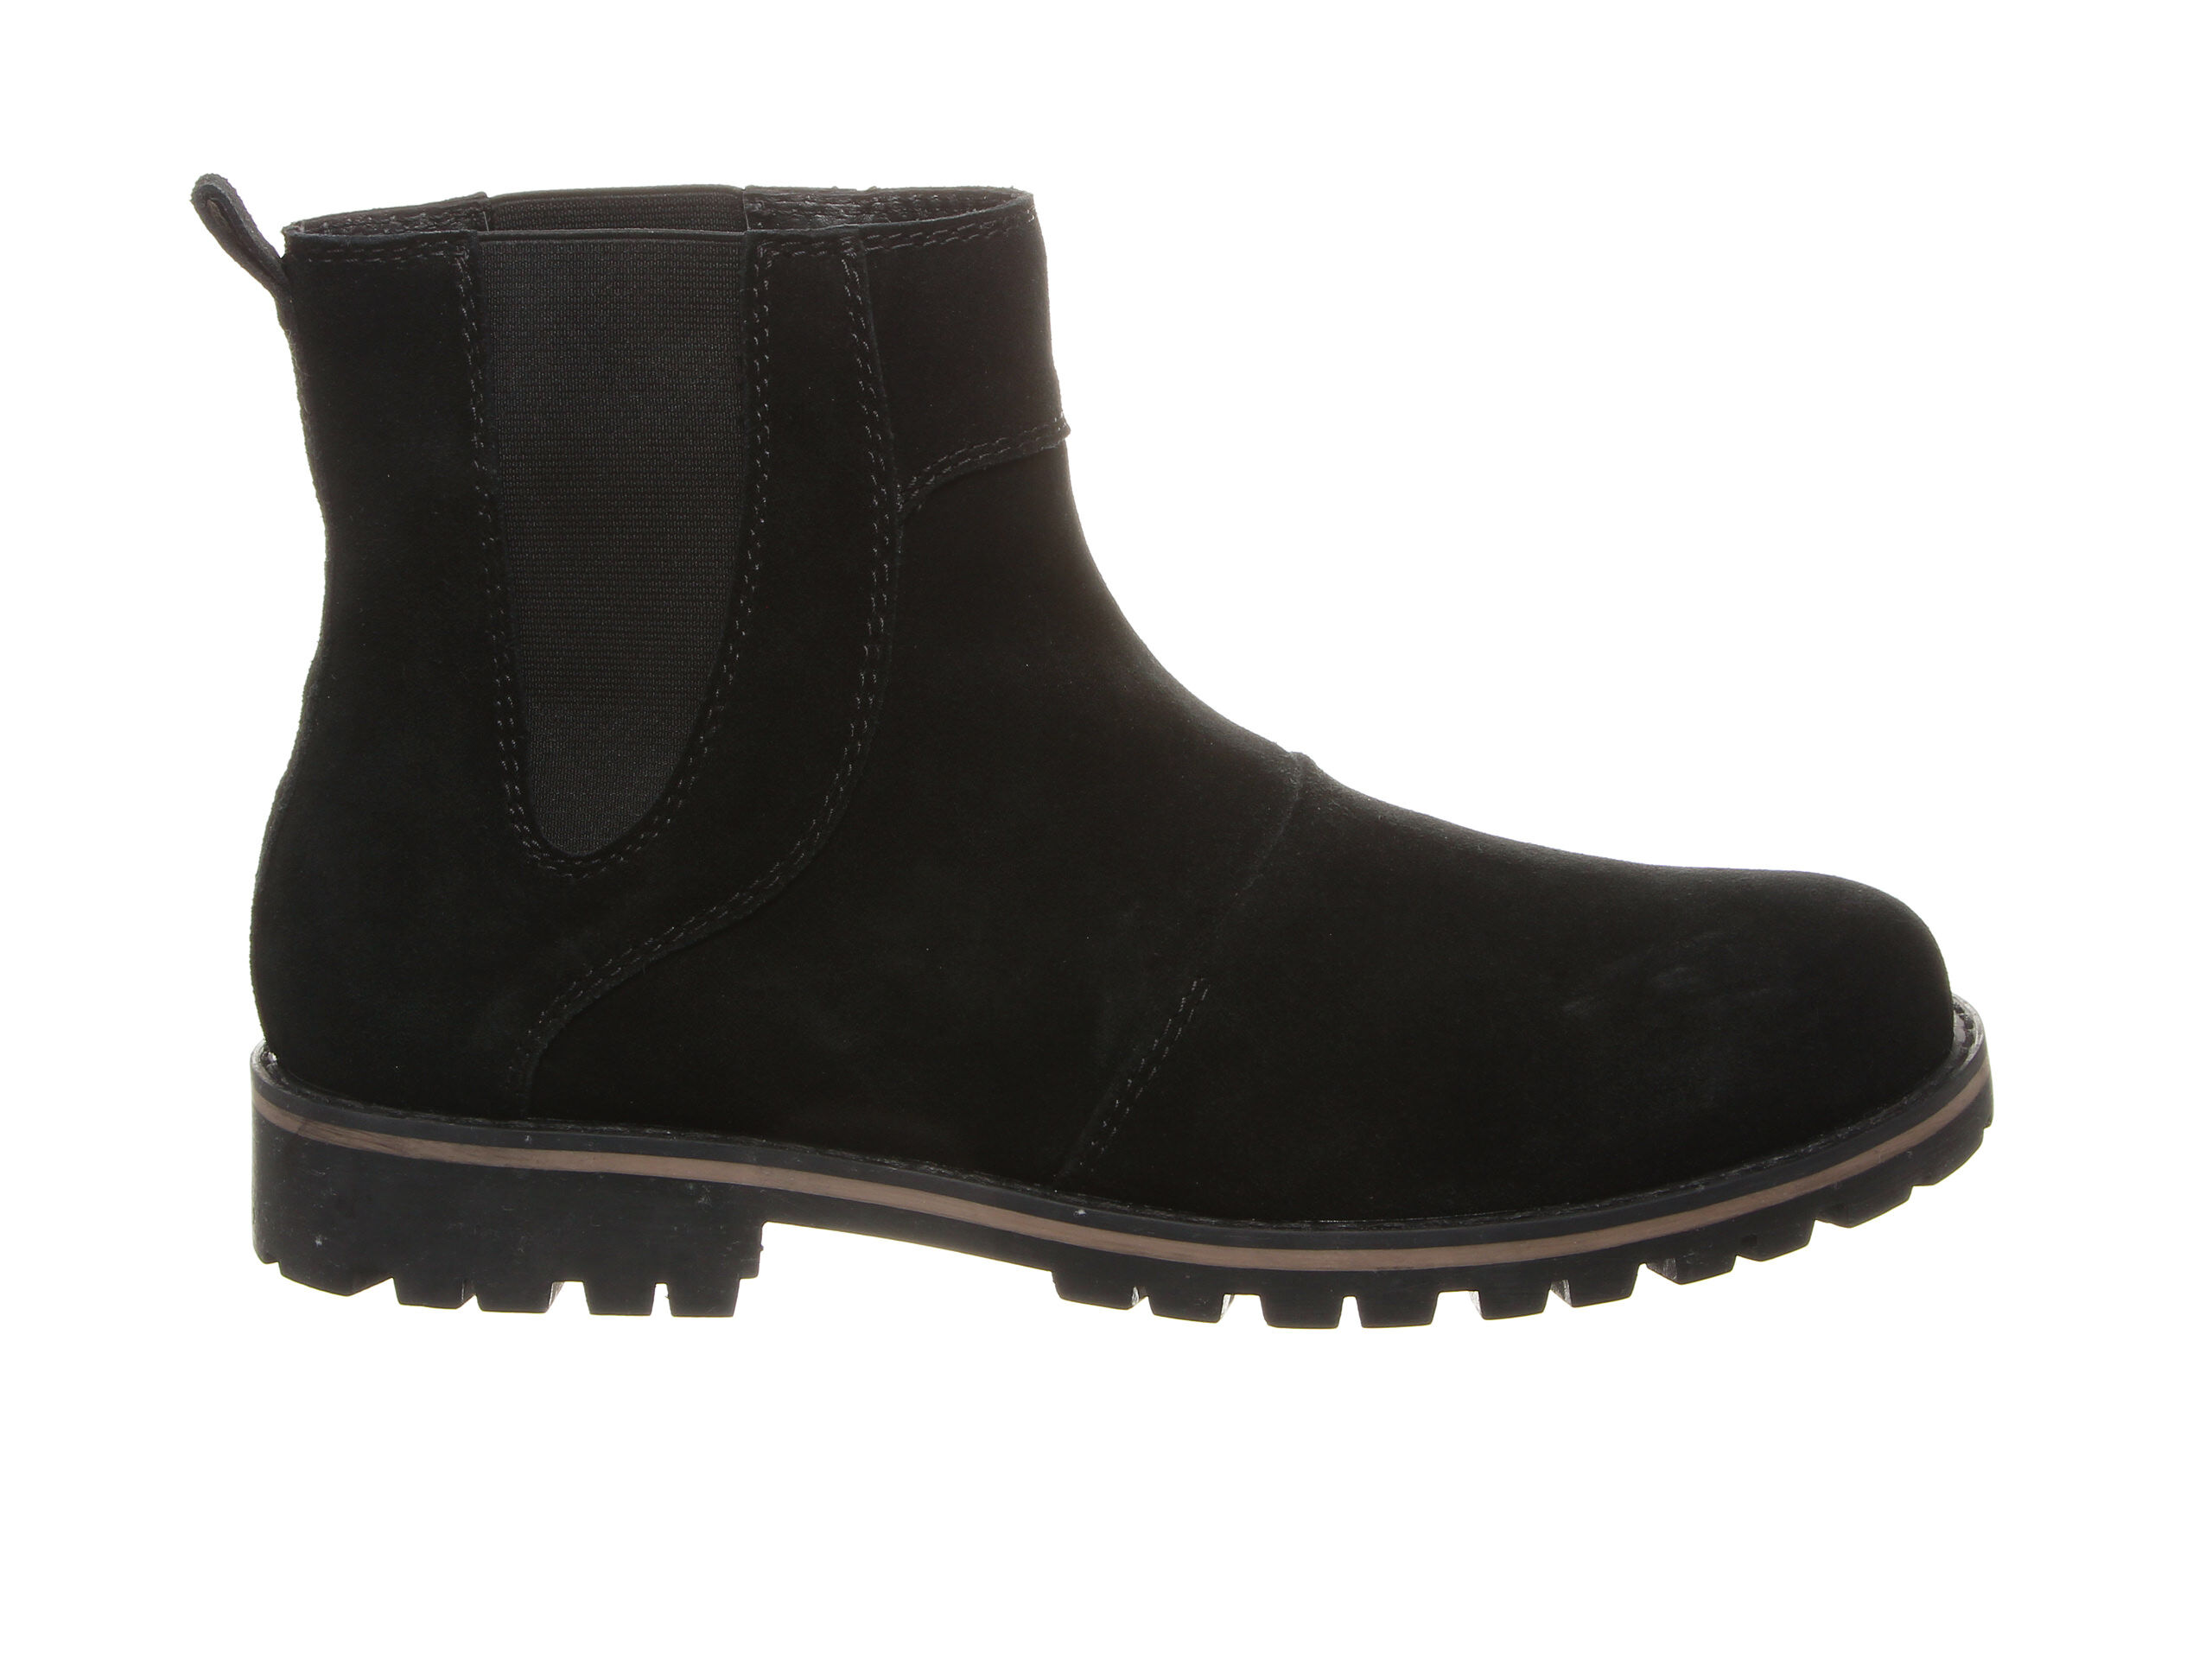 Men's Bearpaw Alastair Chelsea Boots Black